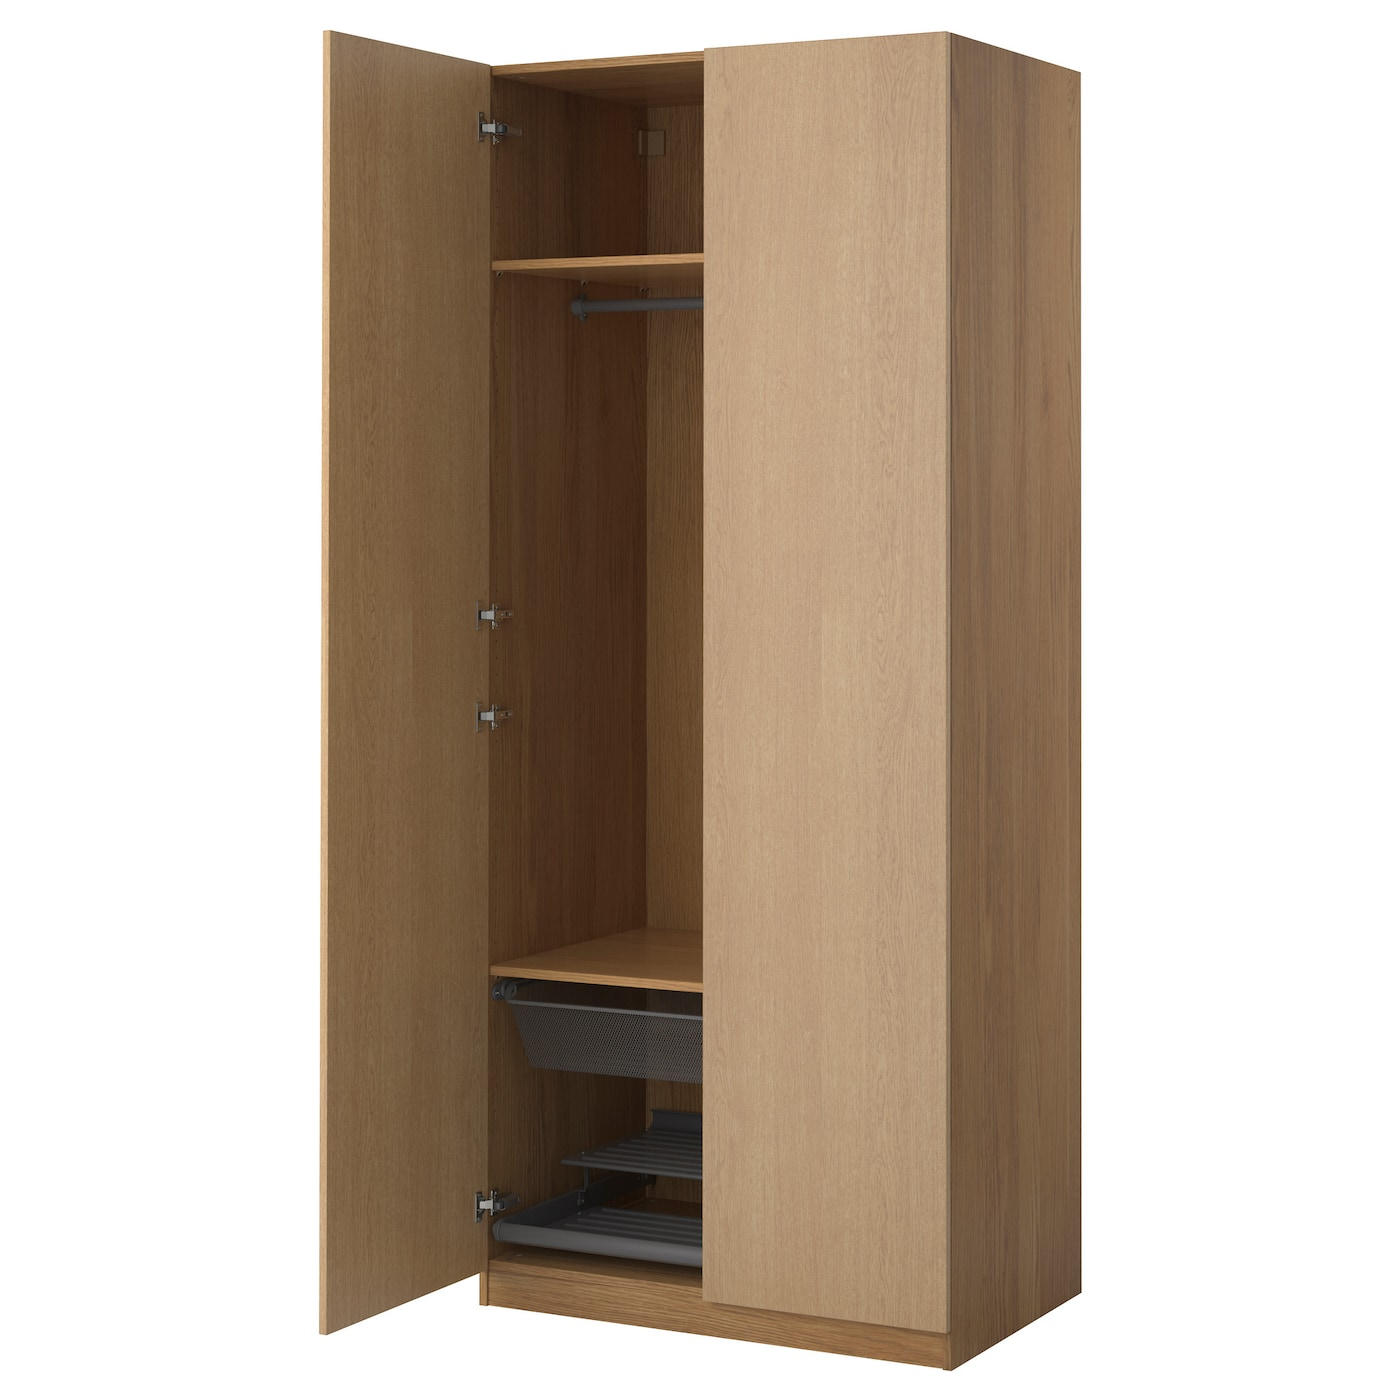 PAX Wardrobe Oak effect nexus oak veneer 100x60x236 cm IKEA